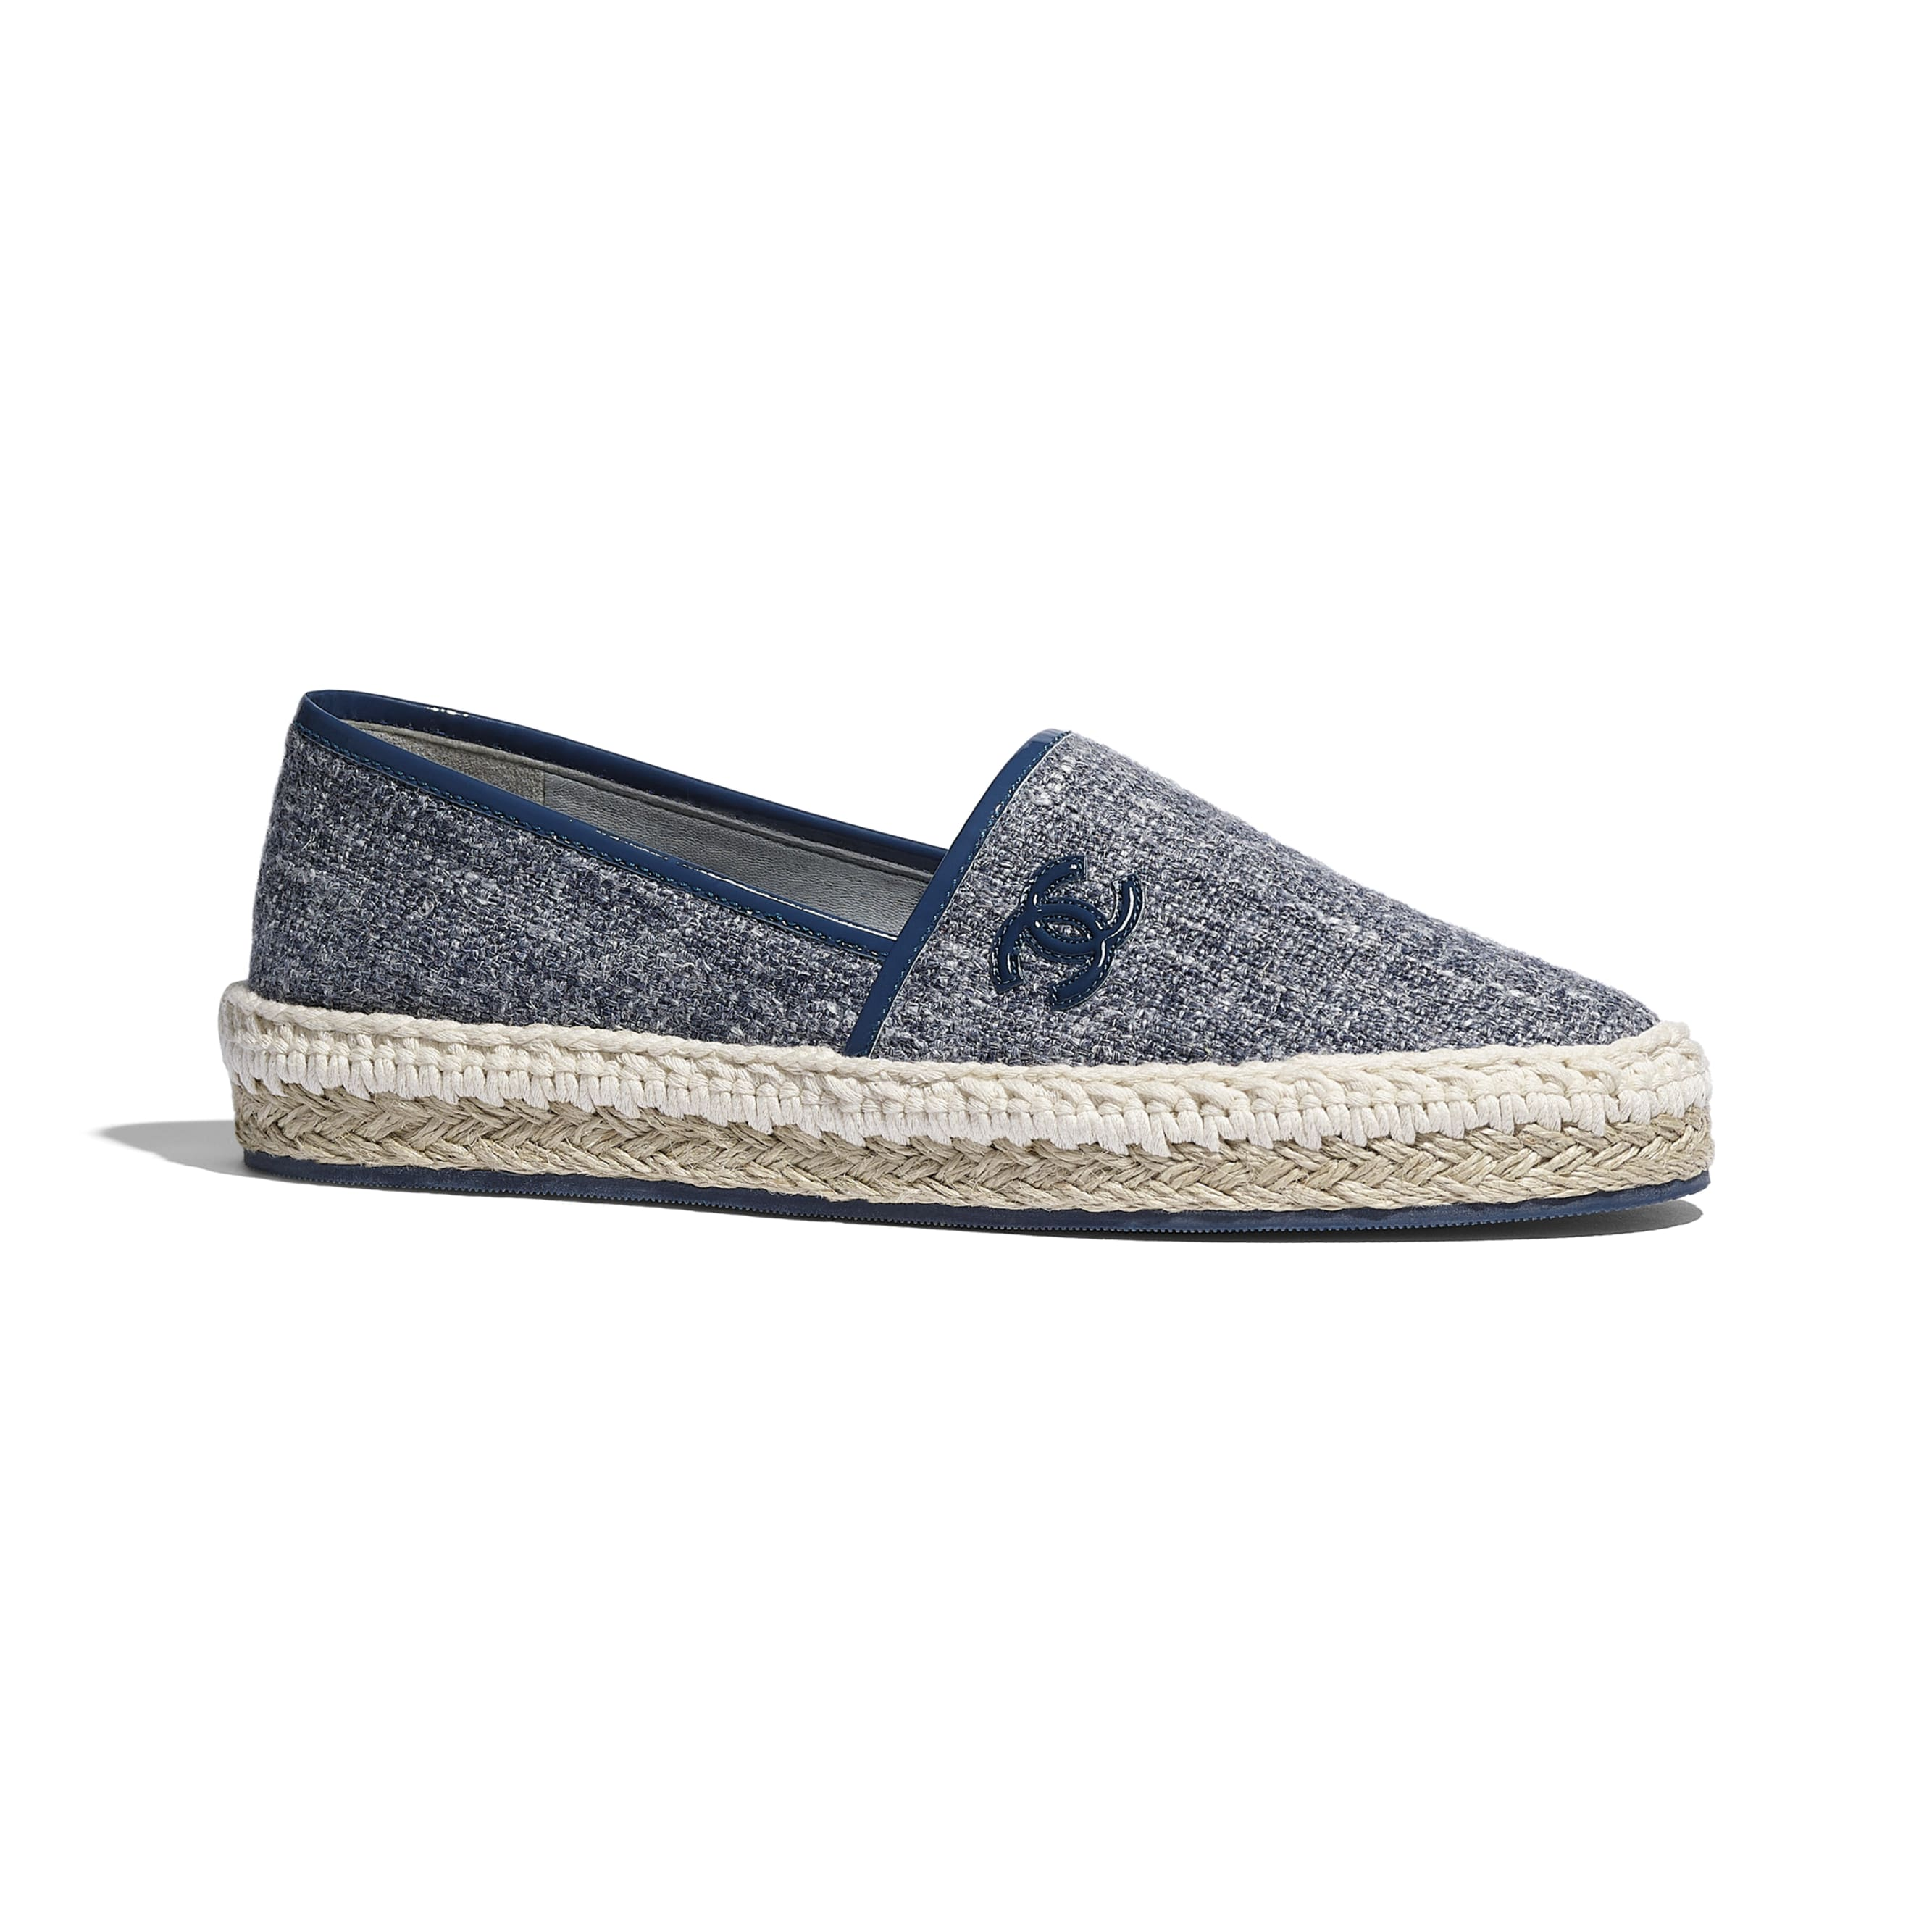 Espadrilles - Blue & Gray - Fabric & Patent Calfskin - CHANEL - Default view - see standard sized version